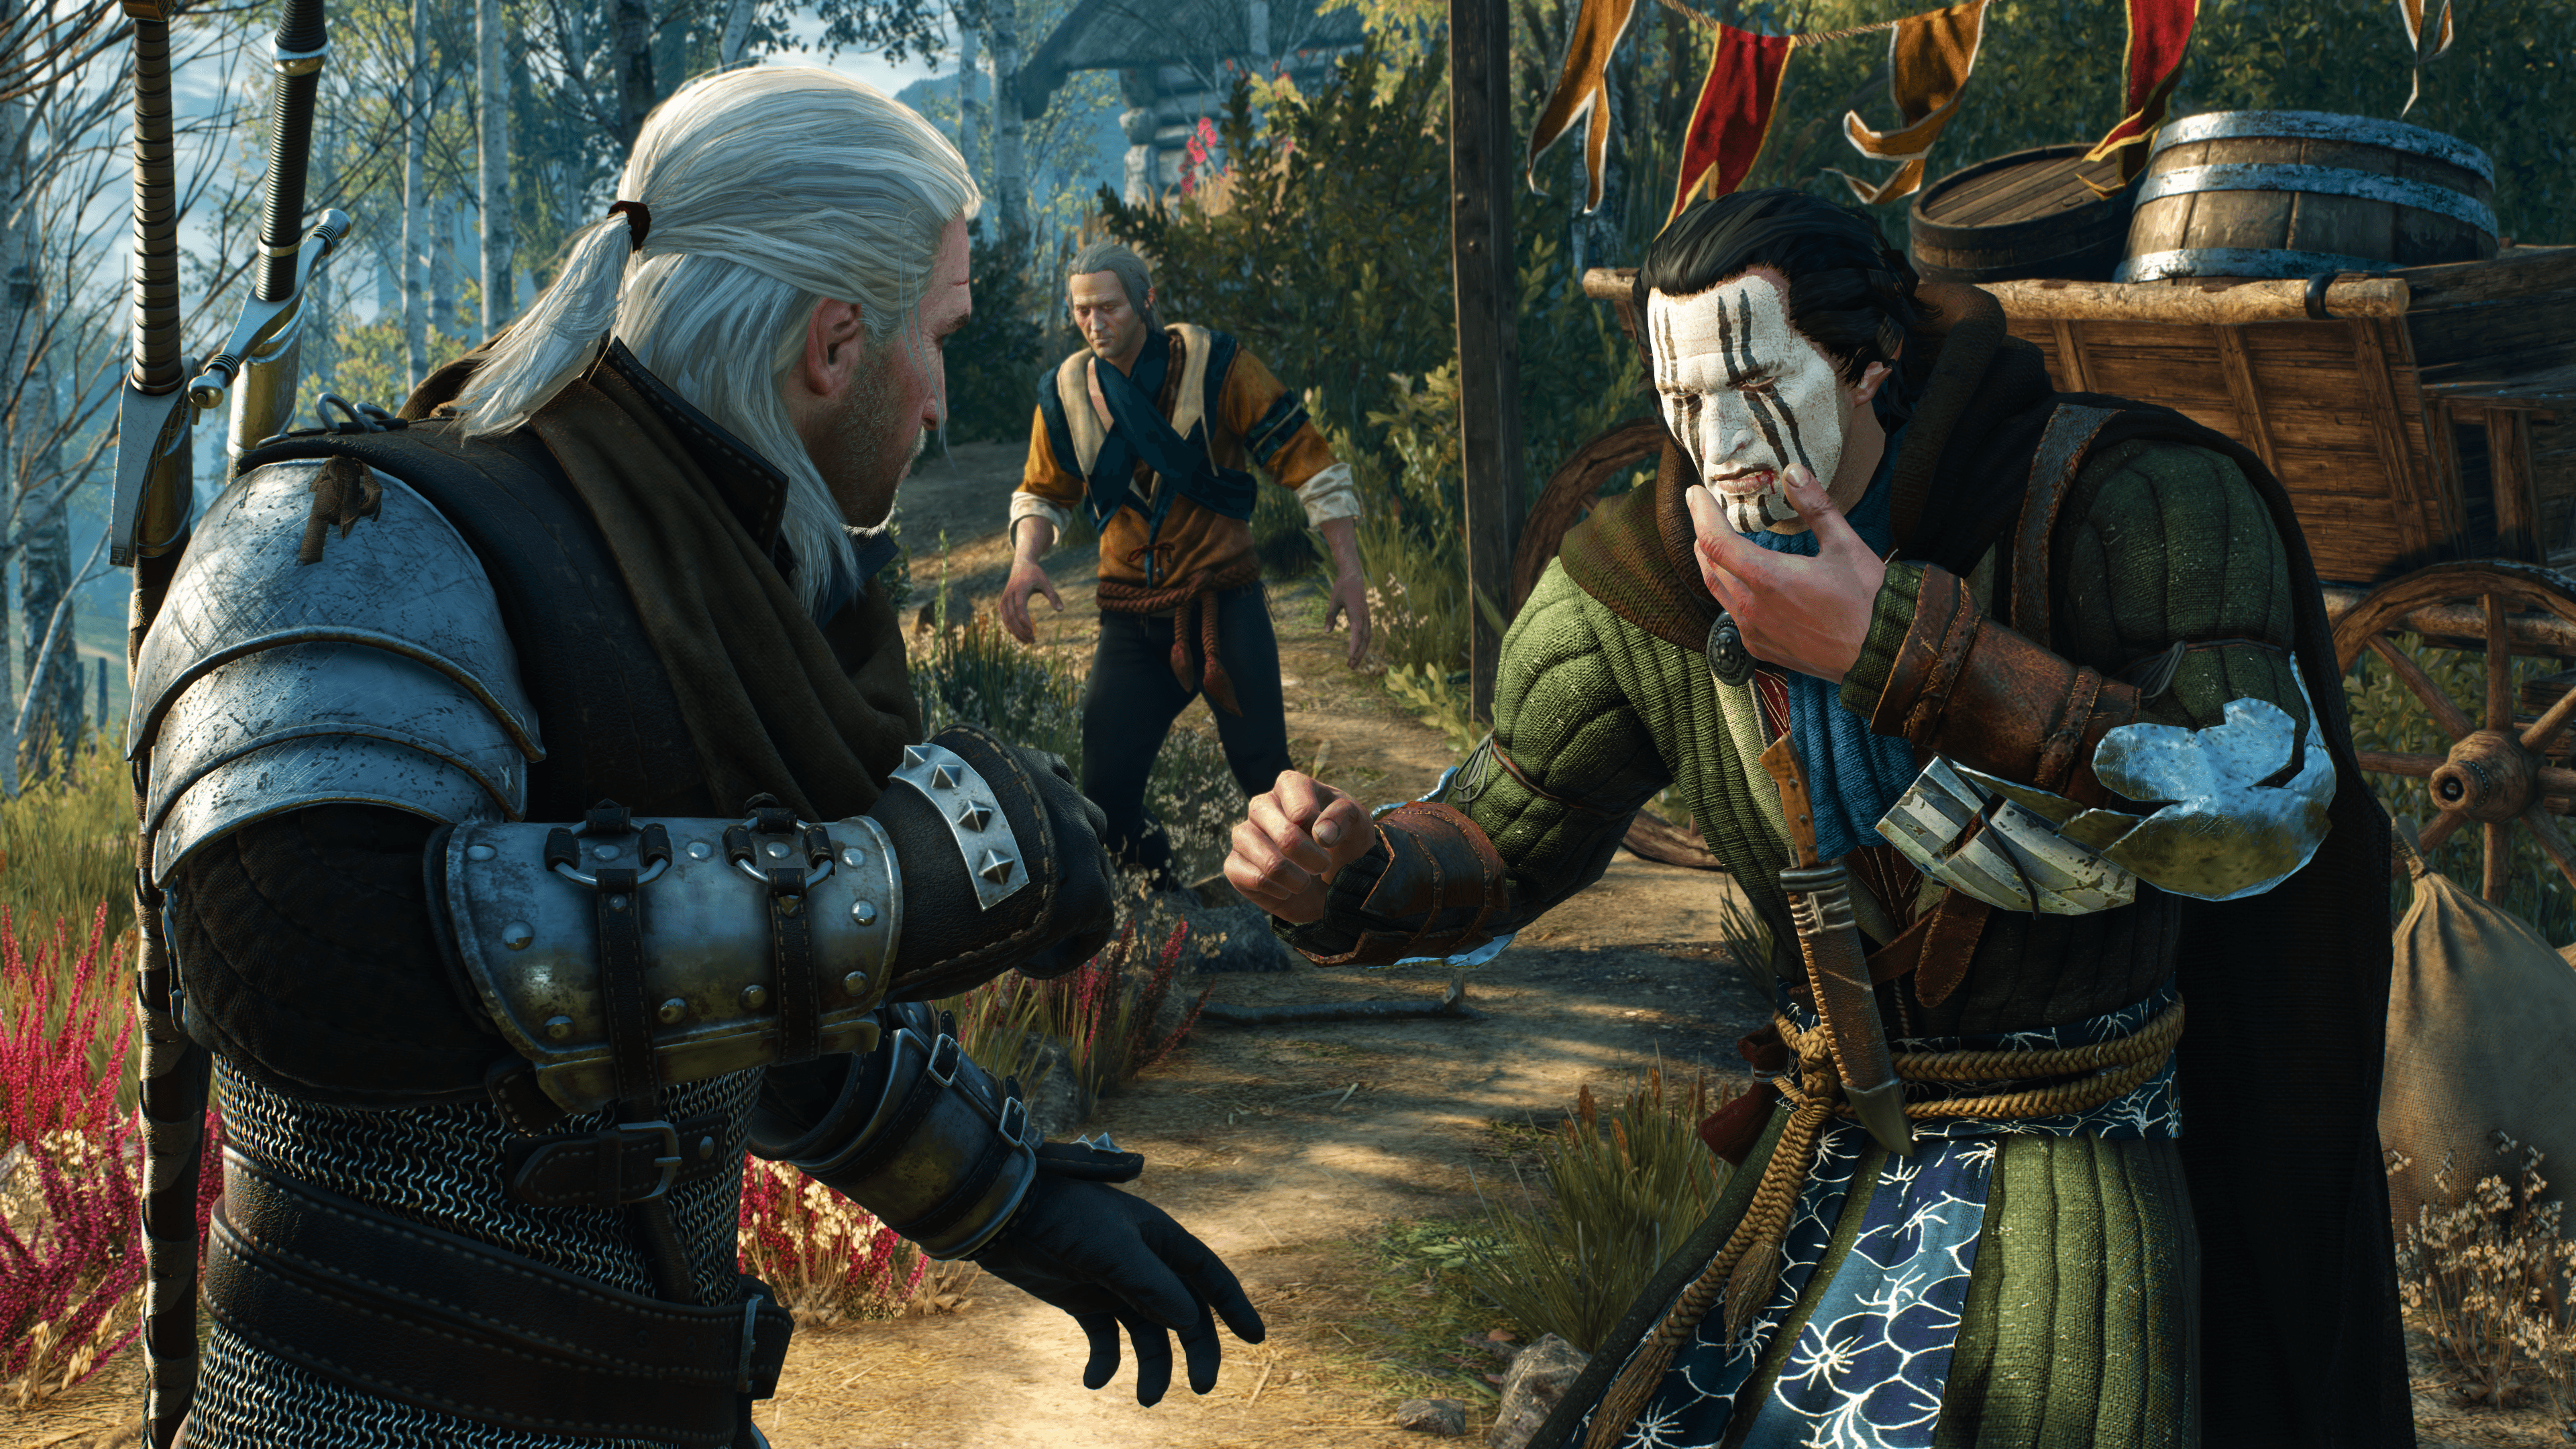 The_Witcher_3_Wild_Hunt_Sometimes_you_have_to_beat_some_sense_into_others